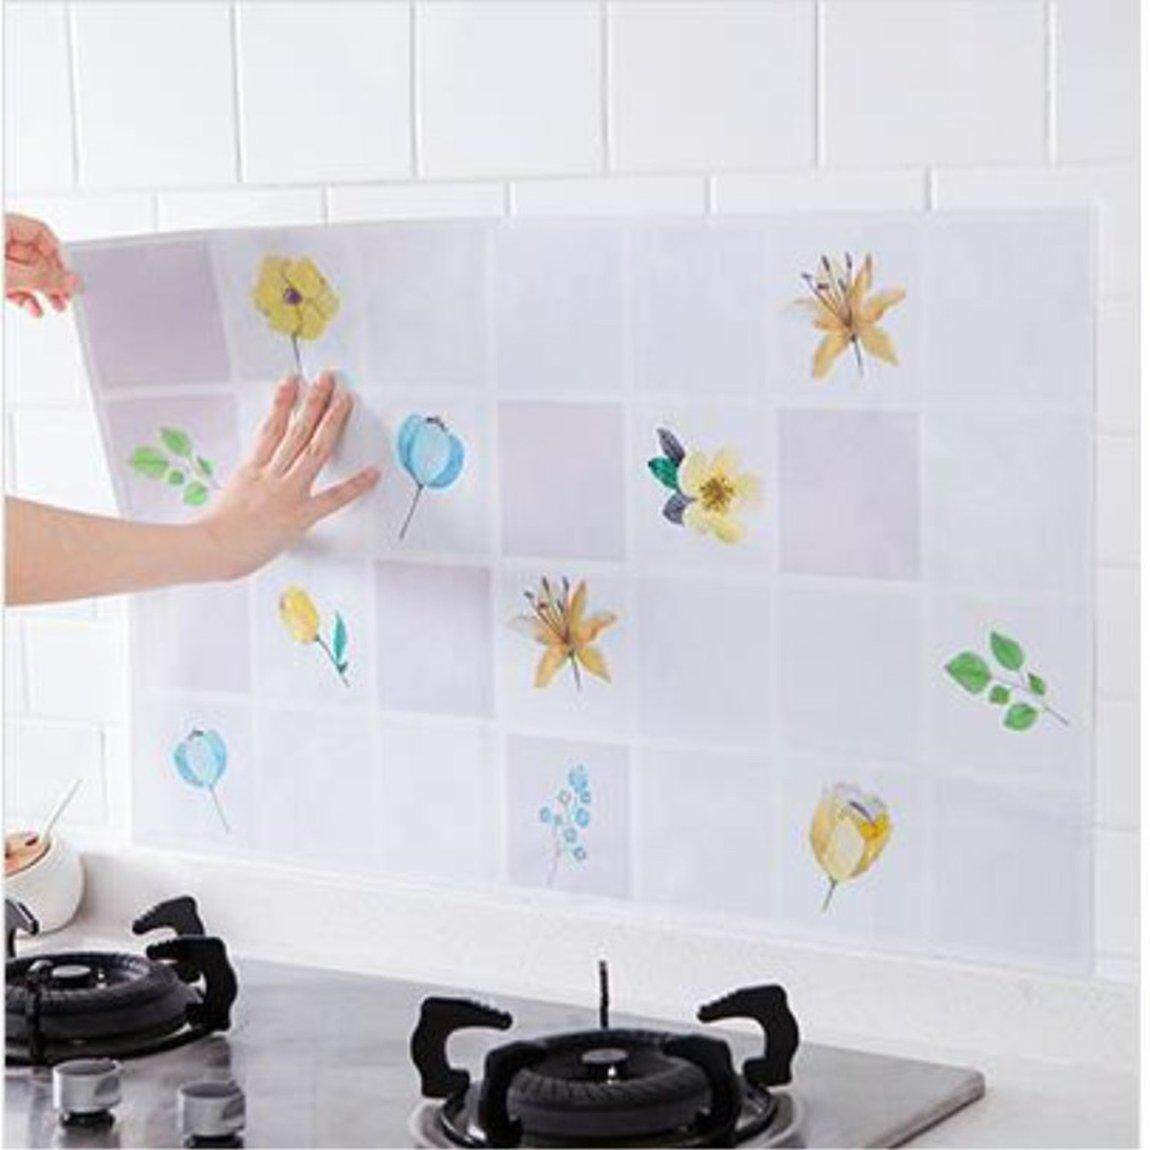 Hot Sale Creative Fashion Kitchen Wall Stickers Self Adhesive High Temperature Oil Proof Waterproof Wallpaper Wall Decor Decal Removeable Smokeproof